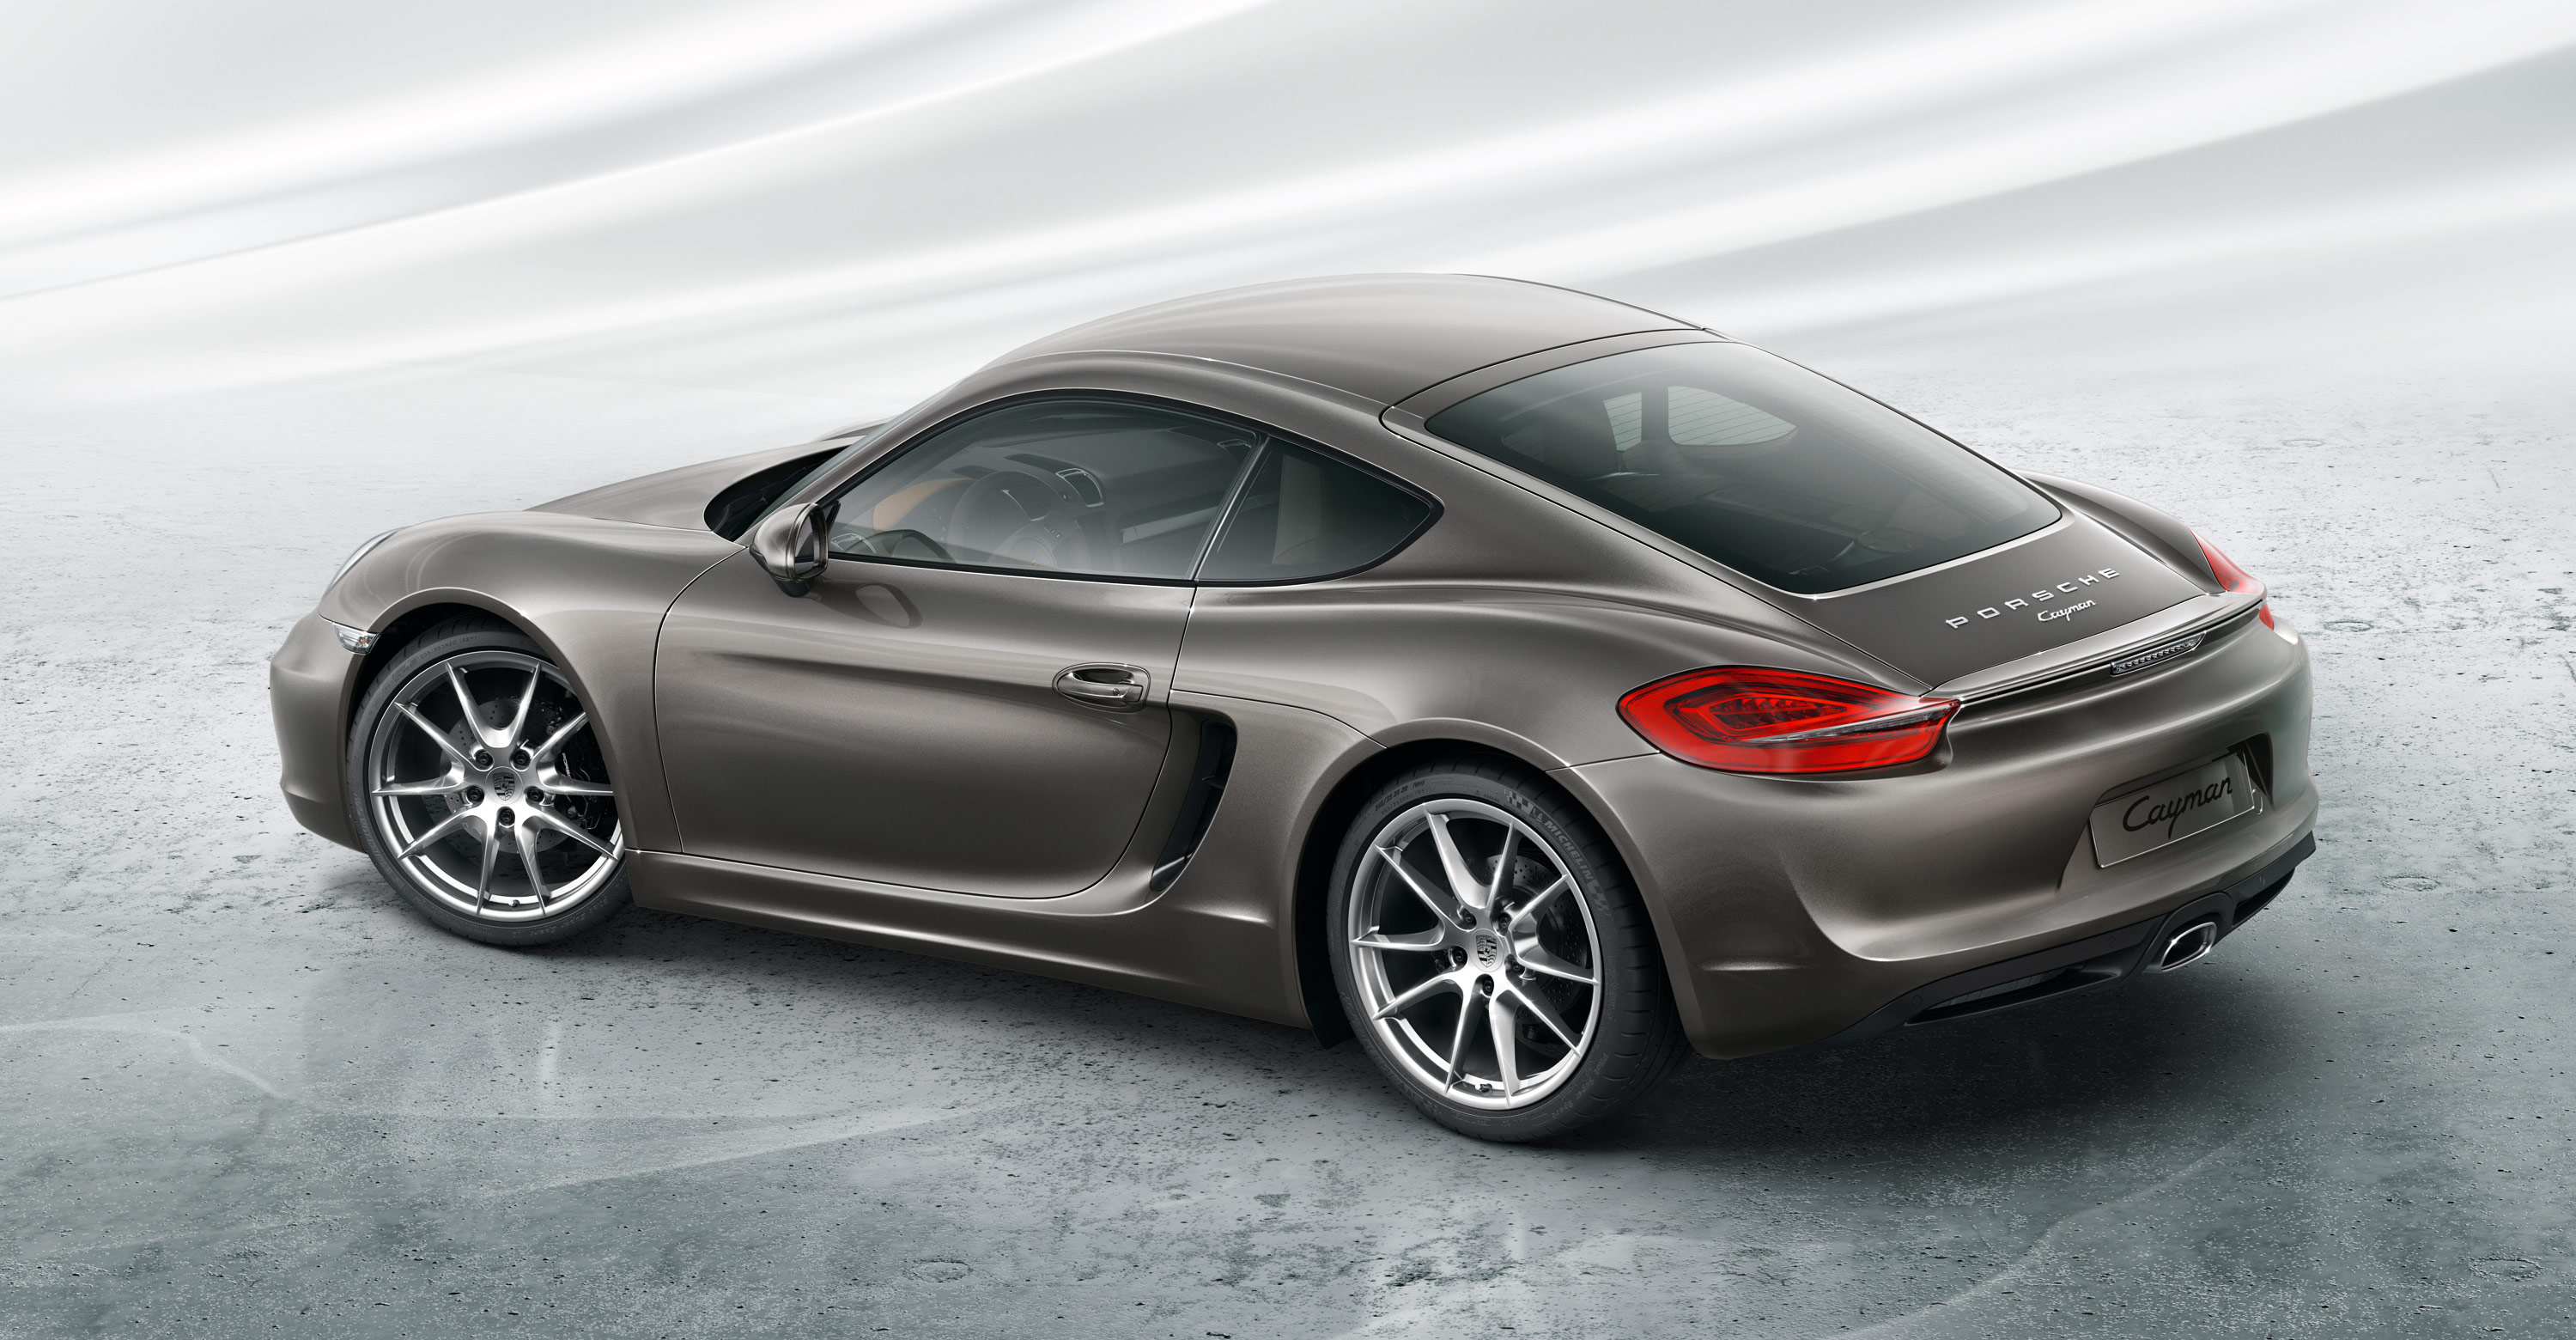 2013 Porsche Cayman wallpapers